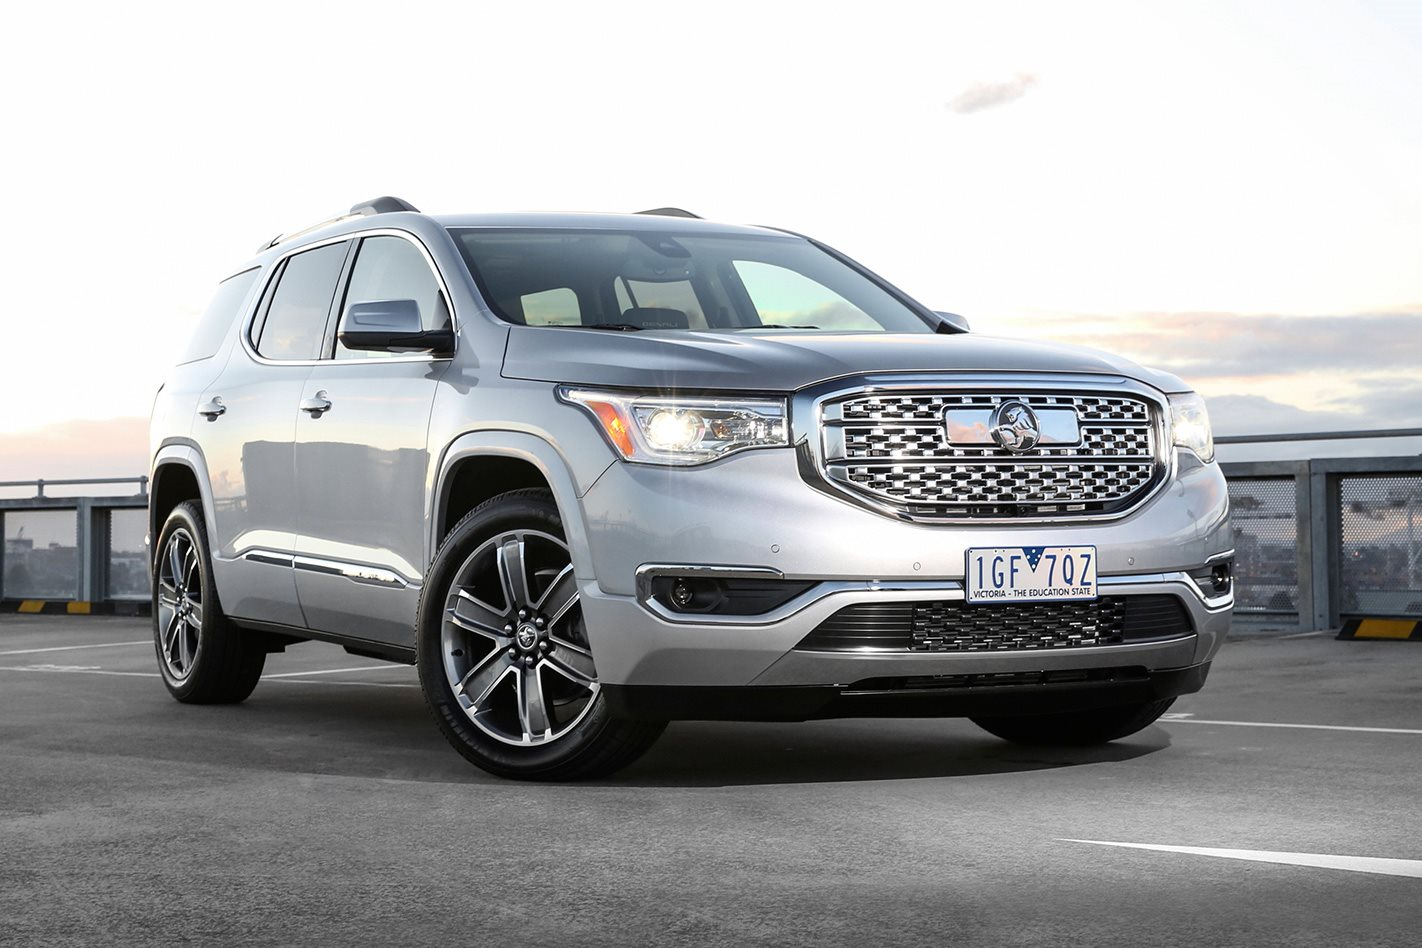 Best 8 Seater Suv >> Holden confirms GMC Acadia for Australia | Wheels